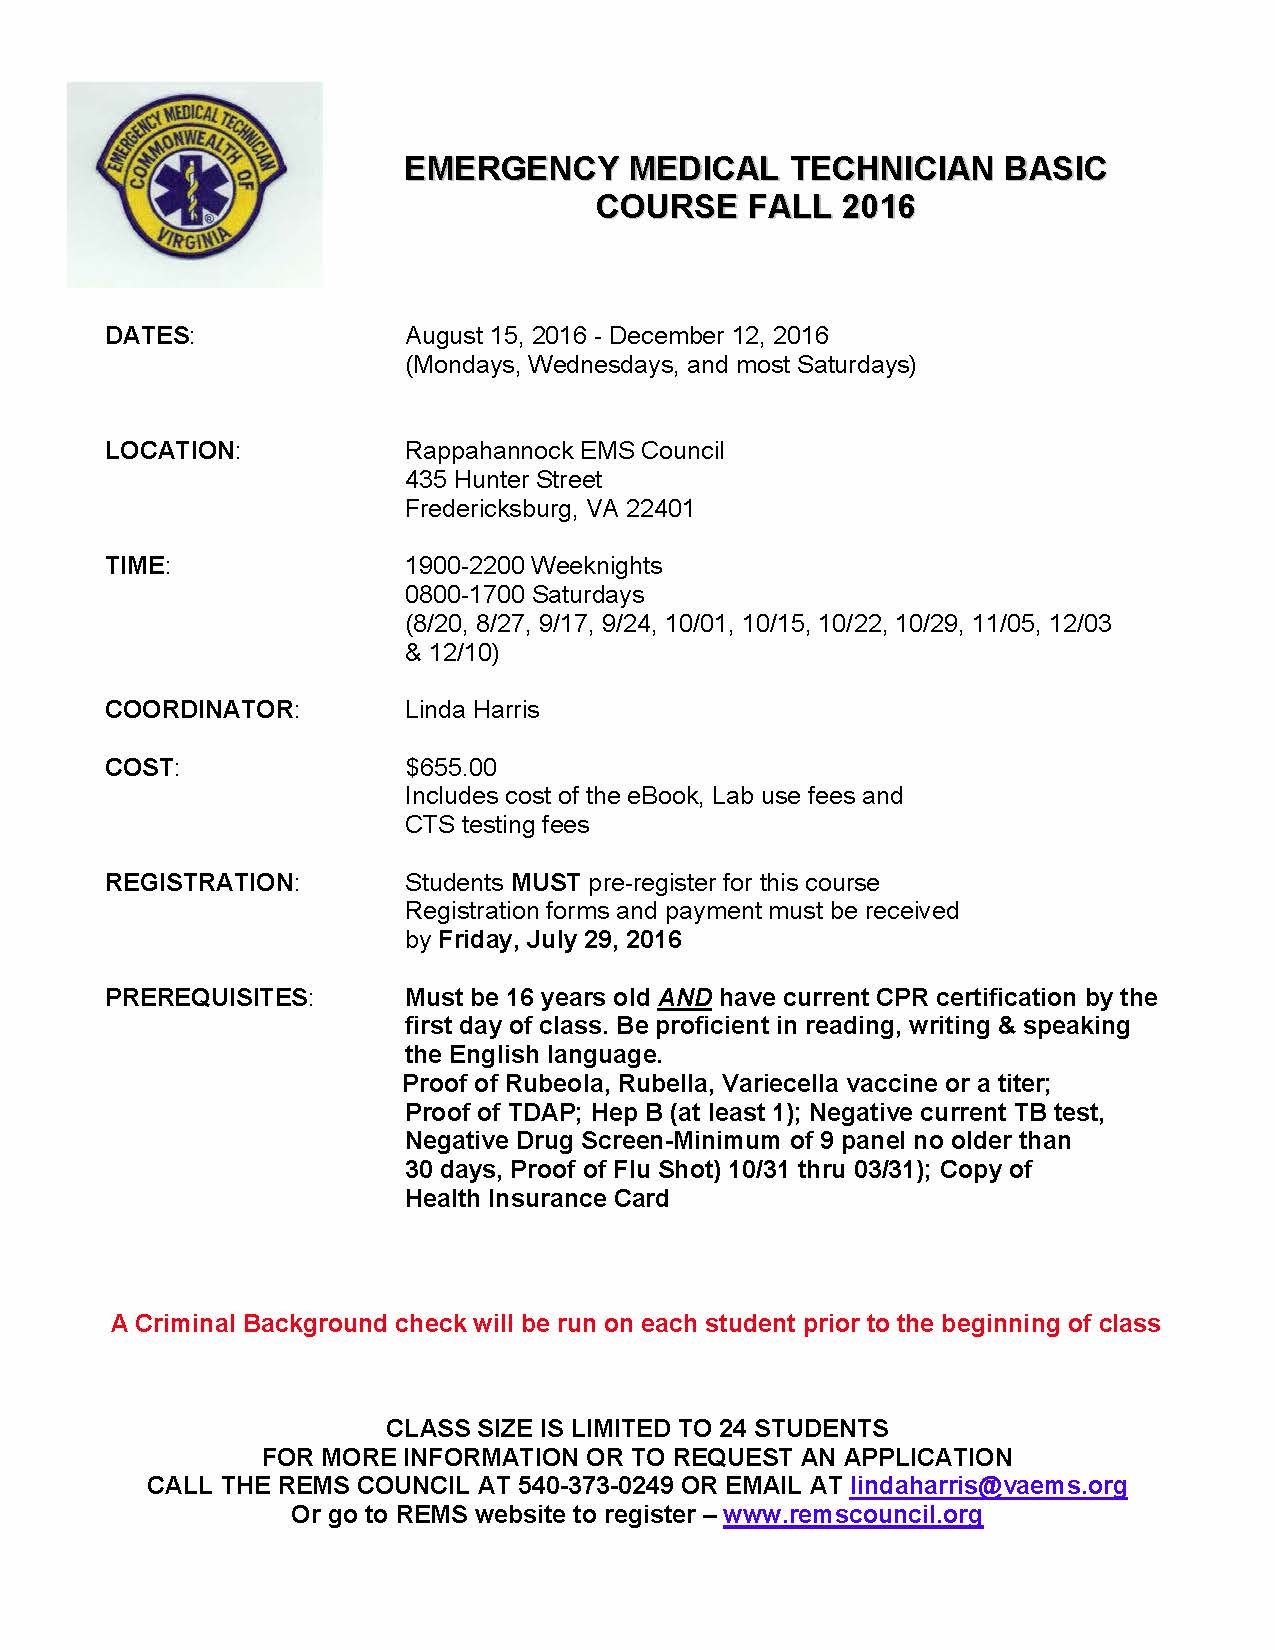 Rems emt class fall course begins 81516 rems council emt basic fa16 flyer 1betcityfo Gallery